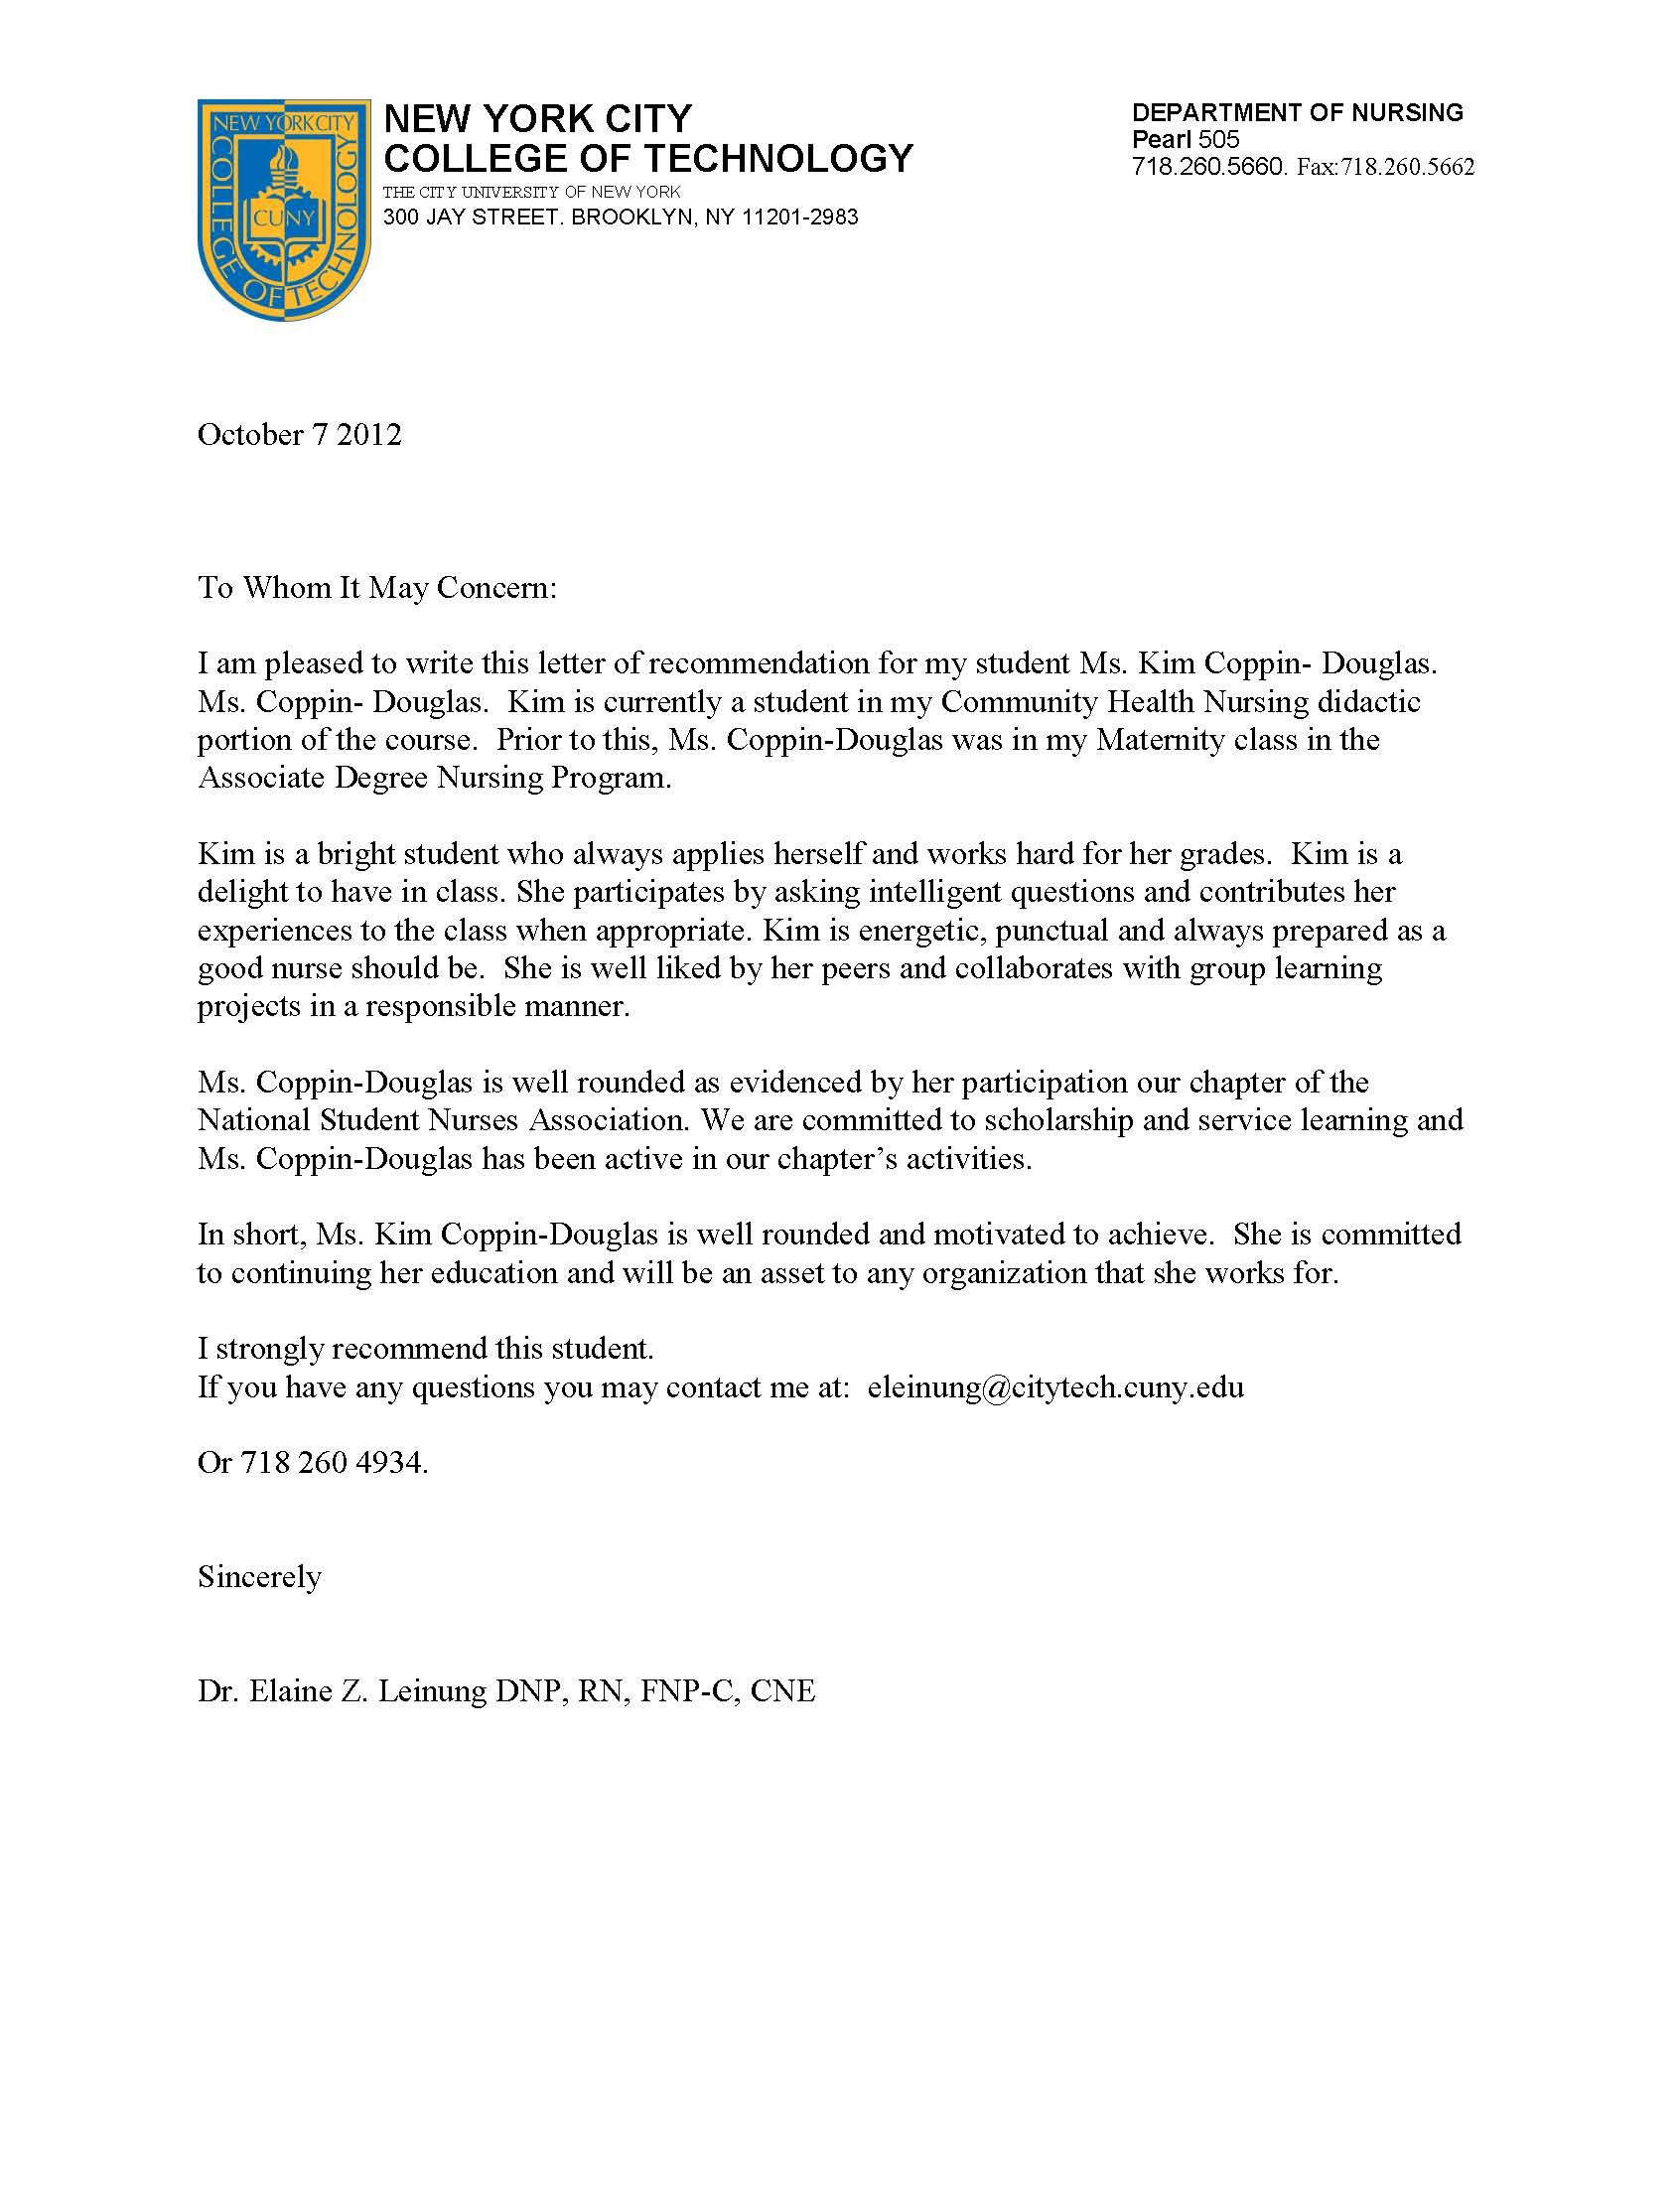 Letter Of Recommendation For Student With Mental Issues